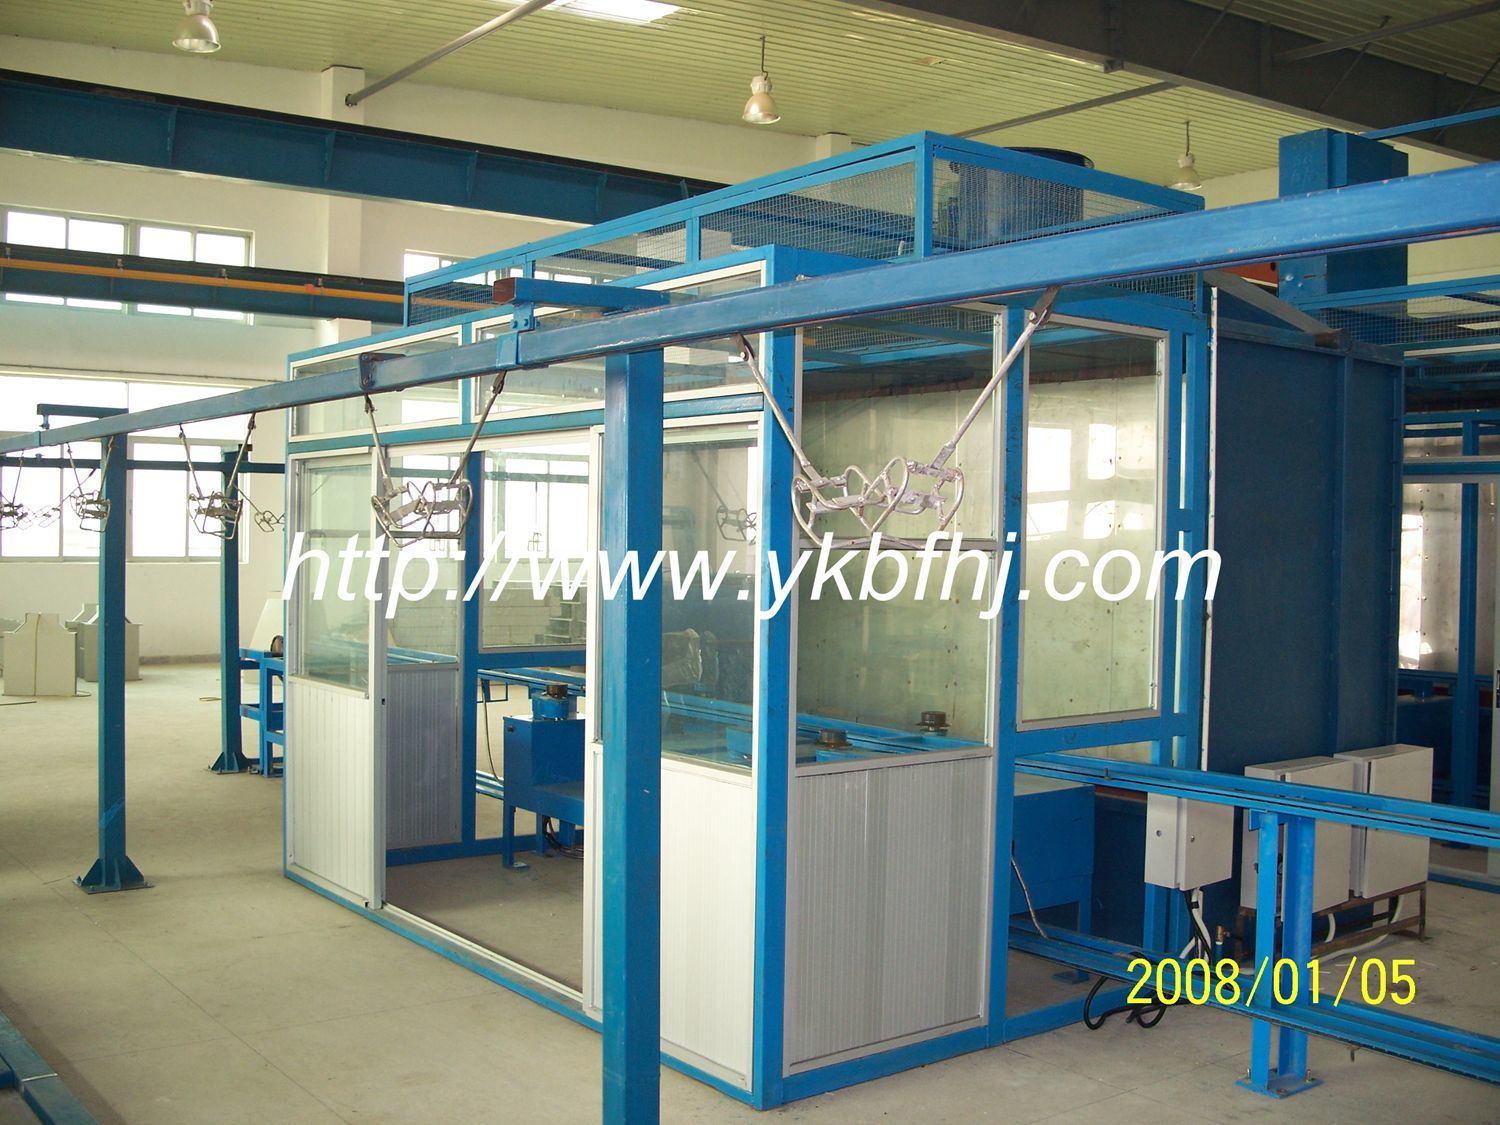 Automatic Painting Booth for Drum Making Machine 210lt.